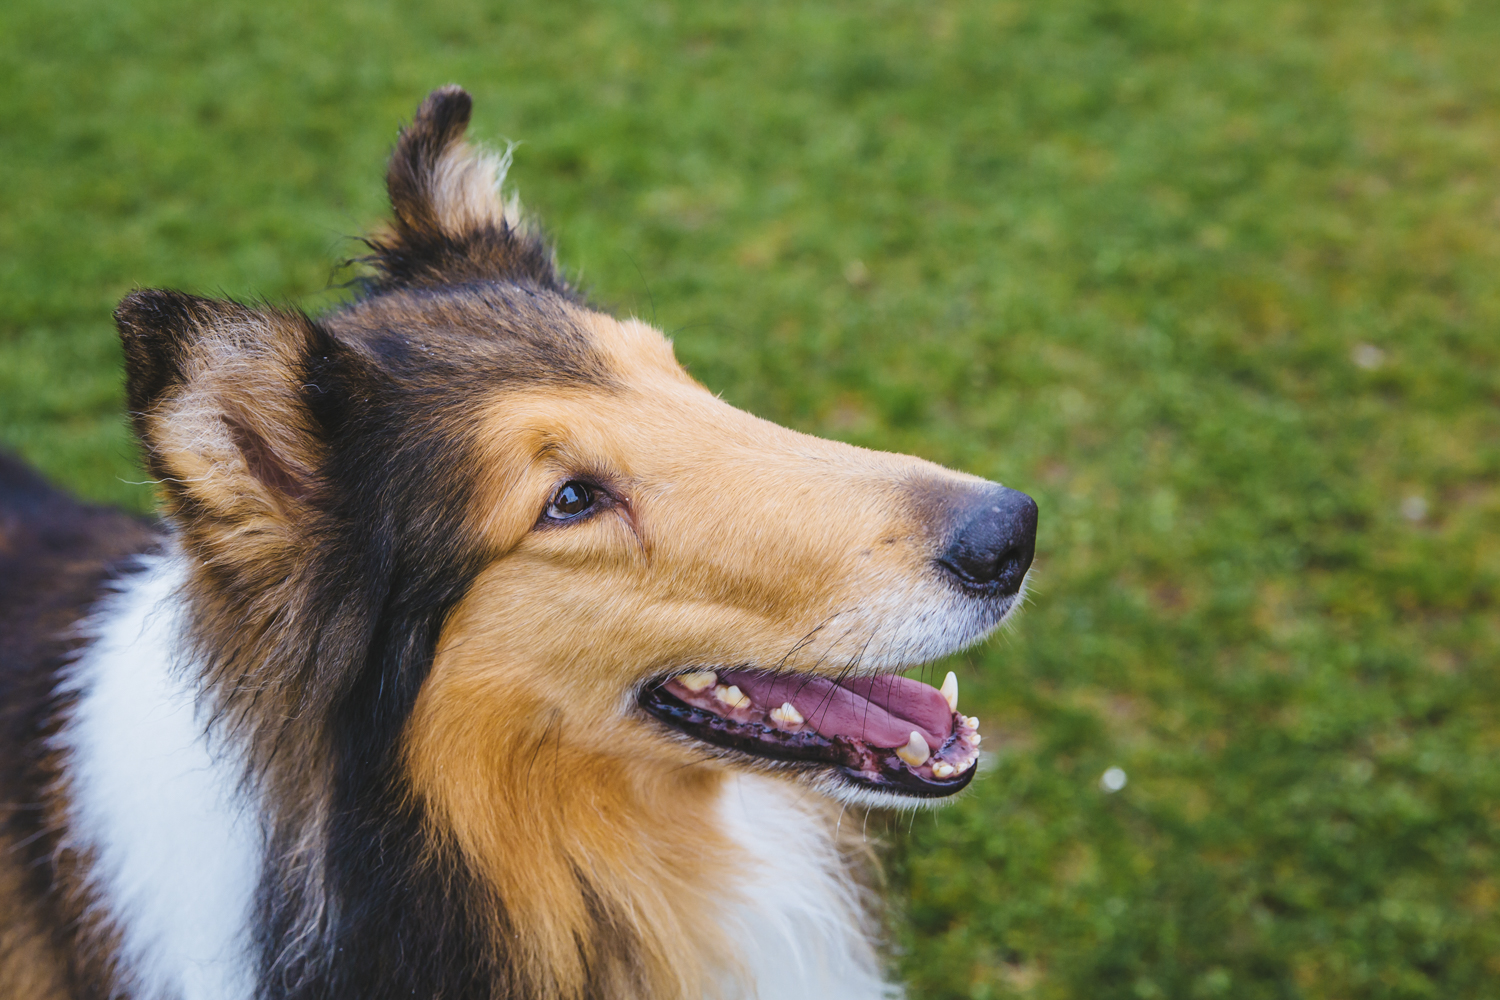 This is D'Argo! D'Argo is a six-year-old Rough Collie who has been a show dog his whole gosh darn life! D'Argo has being training in agility, obedience, rally, treibball, herding, tricks, stunt dog, lure coursing and more since he was one years old. You can find this sweet pup giving demonstrations of agility tricks and is a frequenter of events like the Furry 5K. He's a happy dog who is willing to try new things. D'Argo likes a good stinky shoe and his younger sister. He dislikes shiny floors. you can follow D'Argo on Facebook (@agiledogfun), twitter (@DargoDog), and Instagram (@agile_dog).{ }The Seattle RUFFined Spotlight is a weekly profile of local pets living and loving life in the PNW. If you or someone you know has a pet you'd like featured, email us at hello@seattlerefined.com or tag #SeattleRUFFined and your furbaby could be the next spotlighted! (Image: Sunita Martini / Seattle Refined).